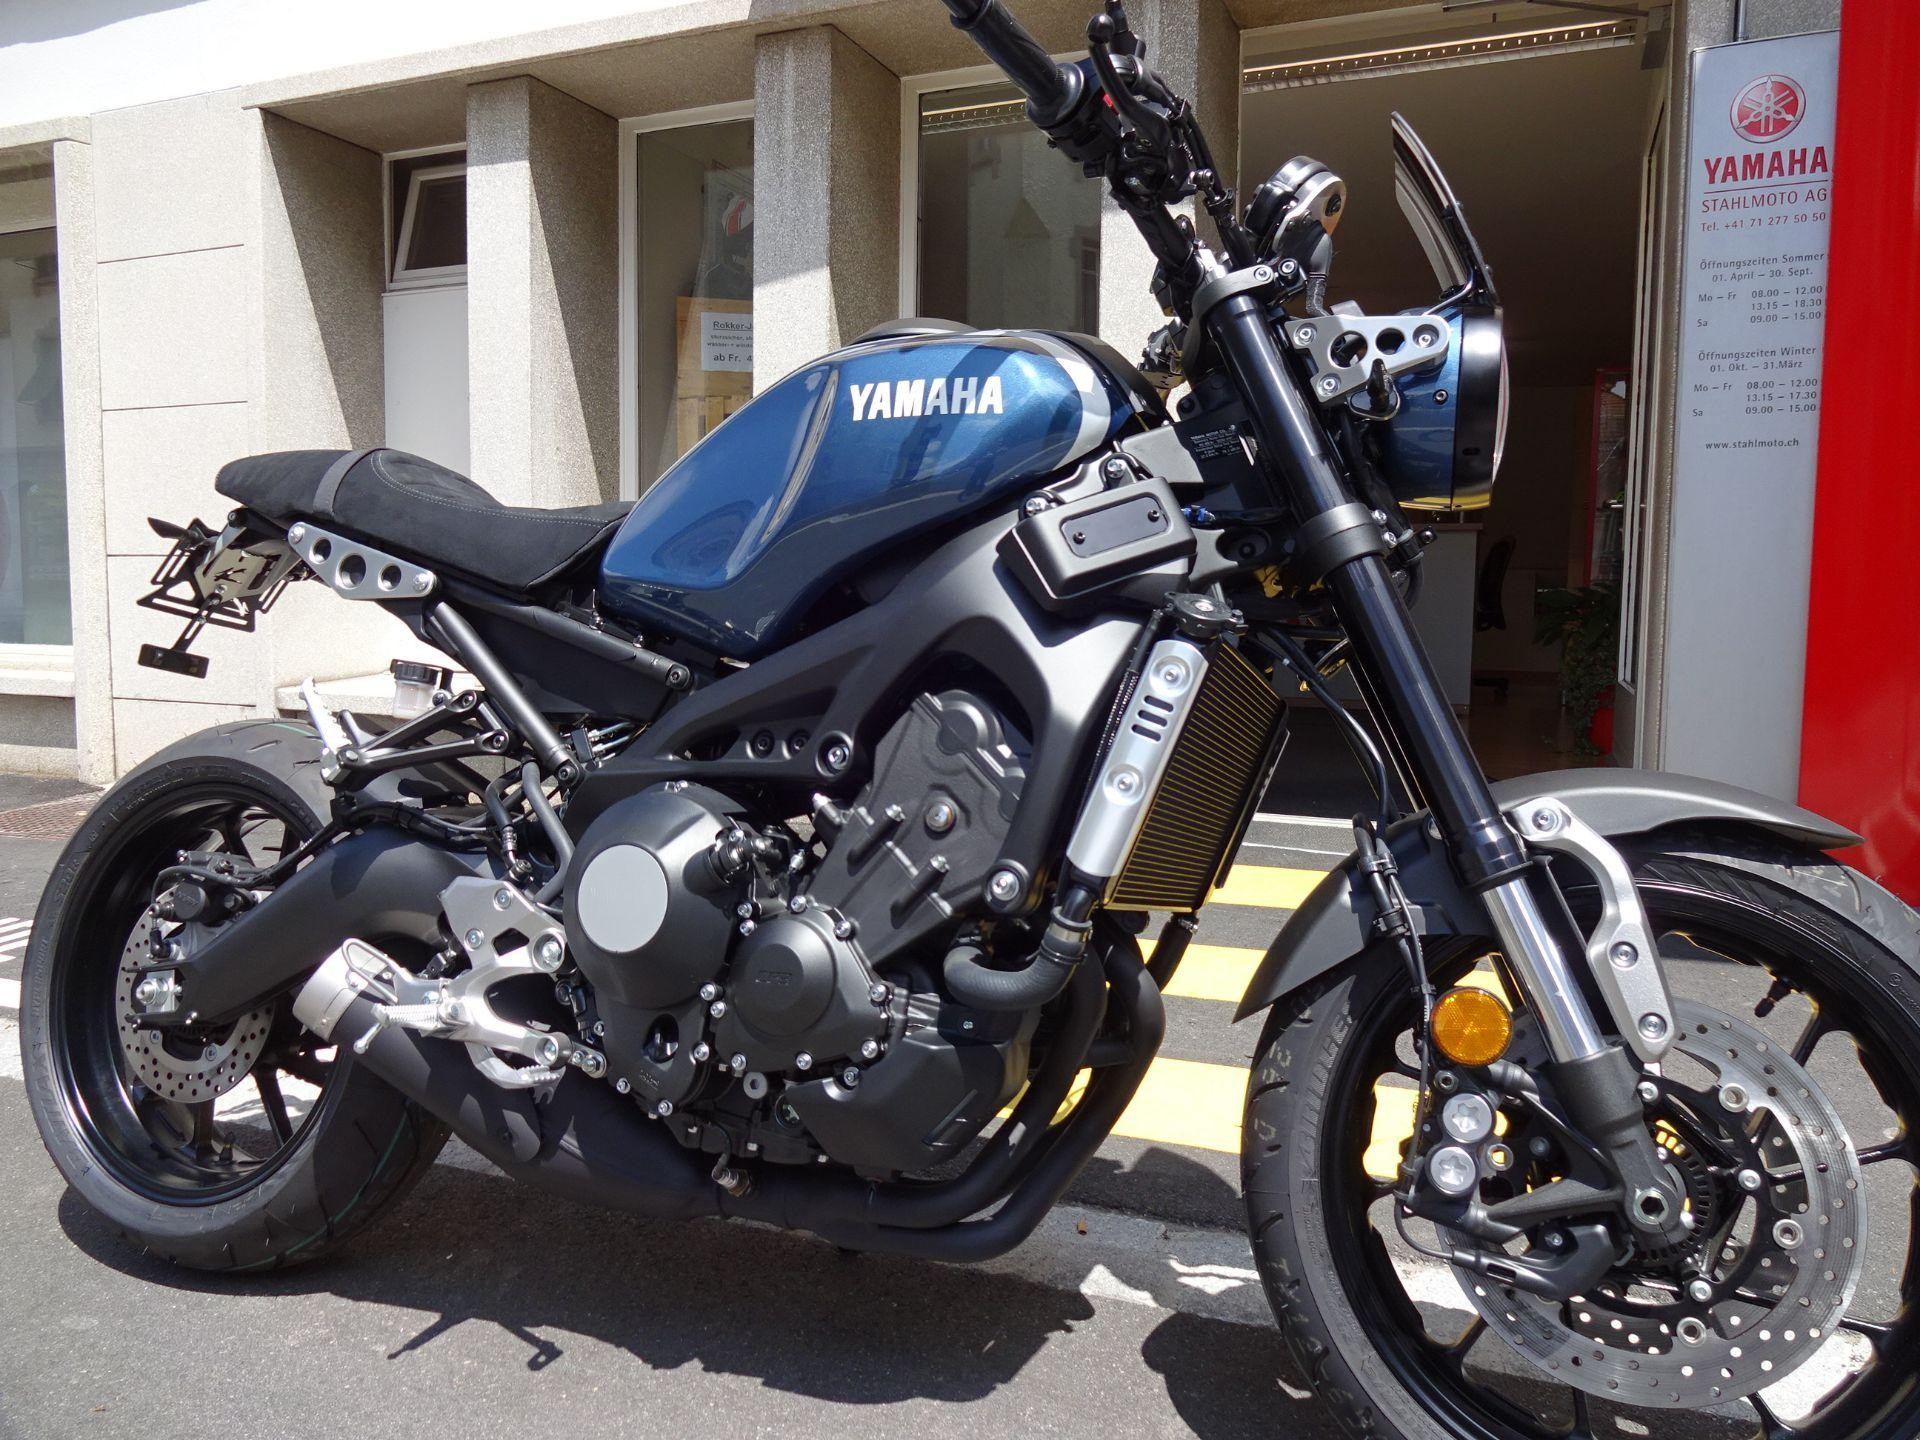 YAMAHA XSR 900 ABS Heckumbau Previous Years Model